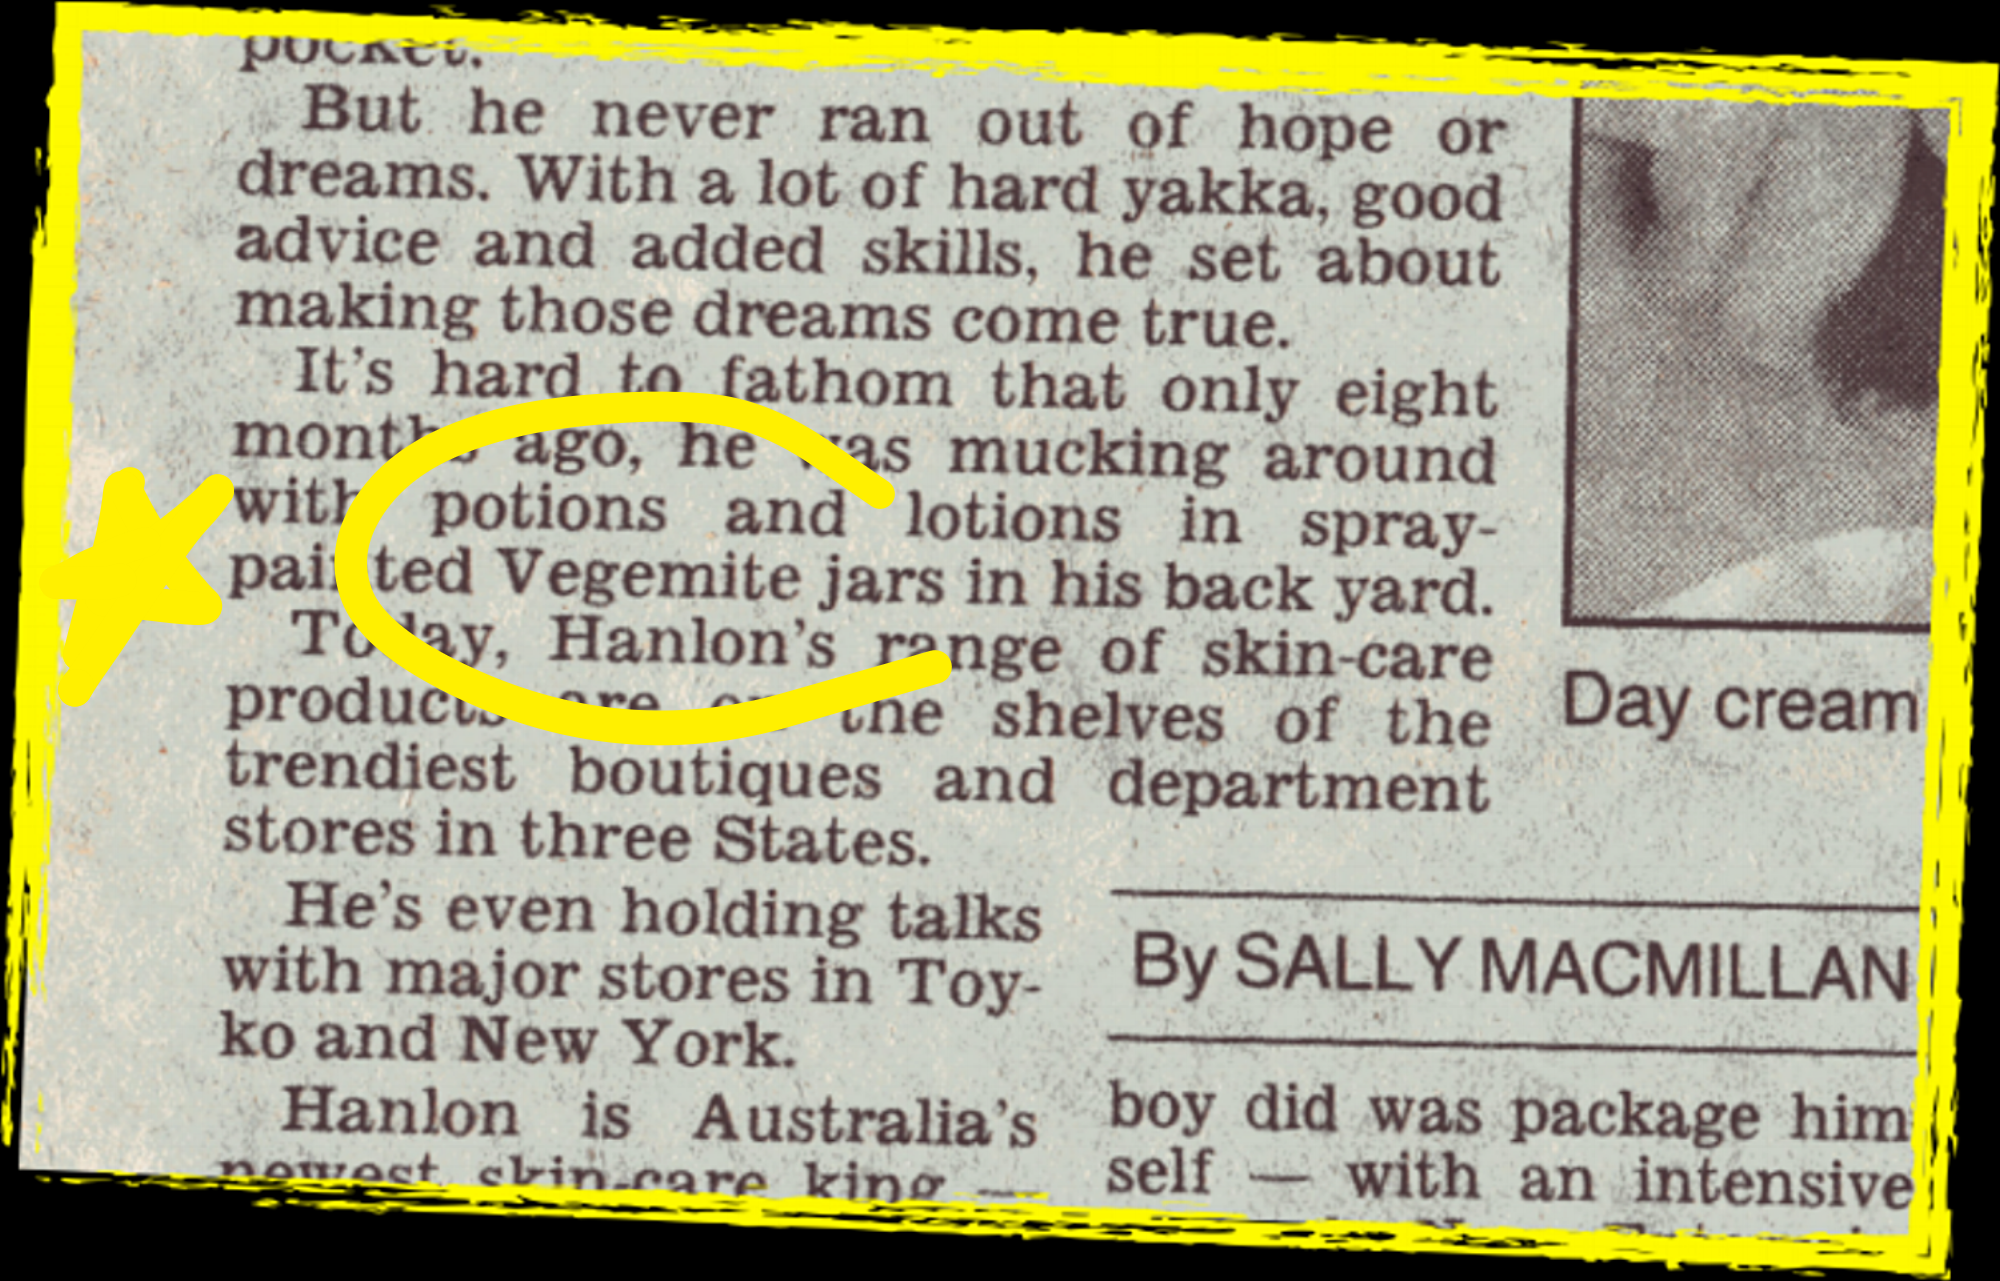 "SYDNEY MORNING HERALD 1995. A NEWSPAPER STORY ON THE CHRISTOPHER HANLON® BRAND SAYS: ""IT'S HARD TO FATHOM THAT ONLY EIGHT MONTHS AGO, HE WAS MUCKING AROUND WITH POTIONS AND LOTIONS IN SPRAY-PAINTED VEGEMITE JARS IN HIS BACK YARD""."